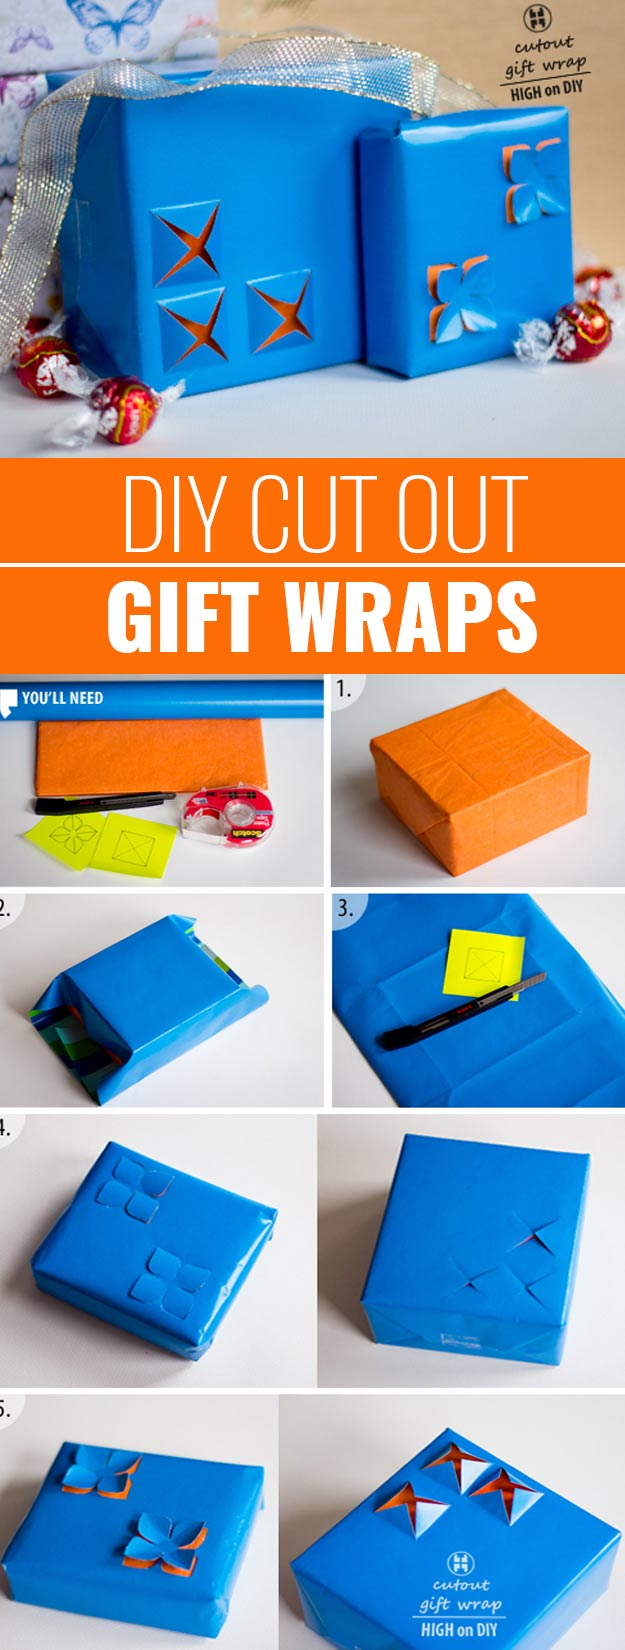 DIY Gift Wrapping Ideas - How To Wrap A Present - Tutorials, Cool Ideas and Instructions | Cute Gift Wrap Ideas for Christmas, Birthdays and Holidays | Tips for Bows and Creative Wrapping Papers | Cut-Out-Gift-Wraps #gifts #diys